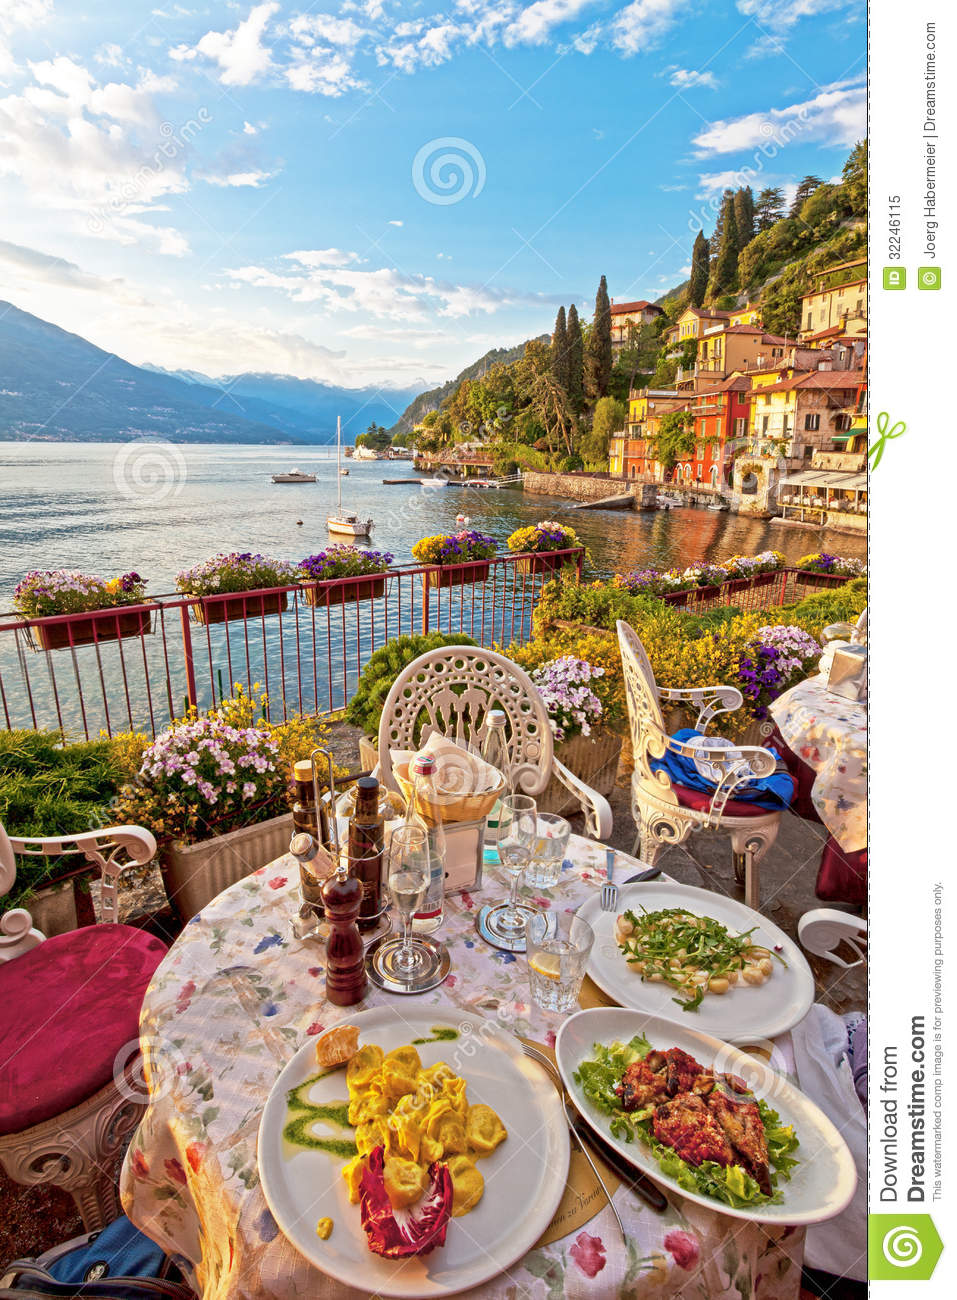 Romantic Dinner Scene Of Plated Italian Food On Terrace  : romantic dinner scene plated italian food terrace overlook three plates lovely vegetarian white plates table lovely 32246115 from www.dreamstime.com size 957 x 1300 jpeg 275kB